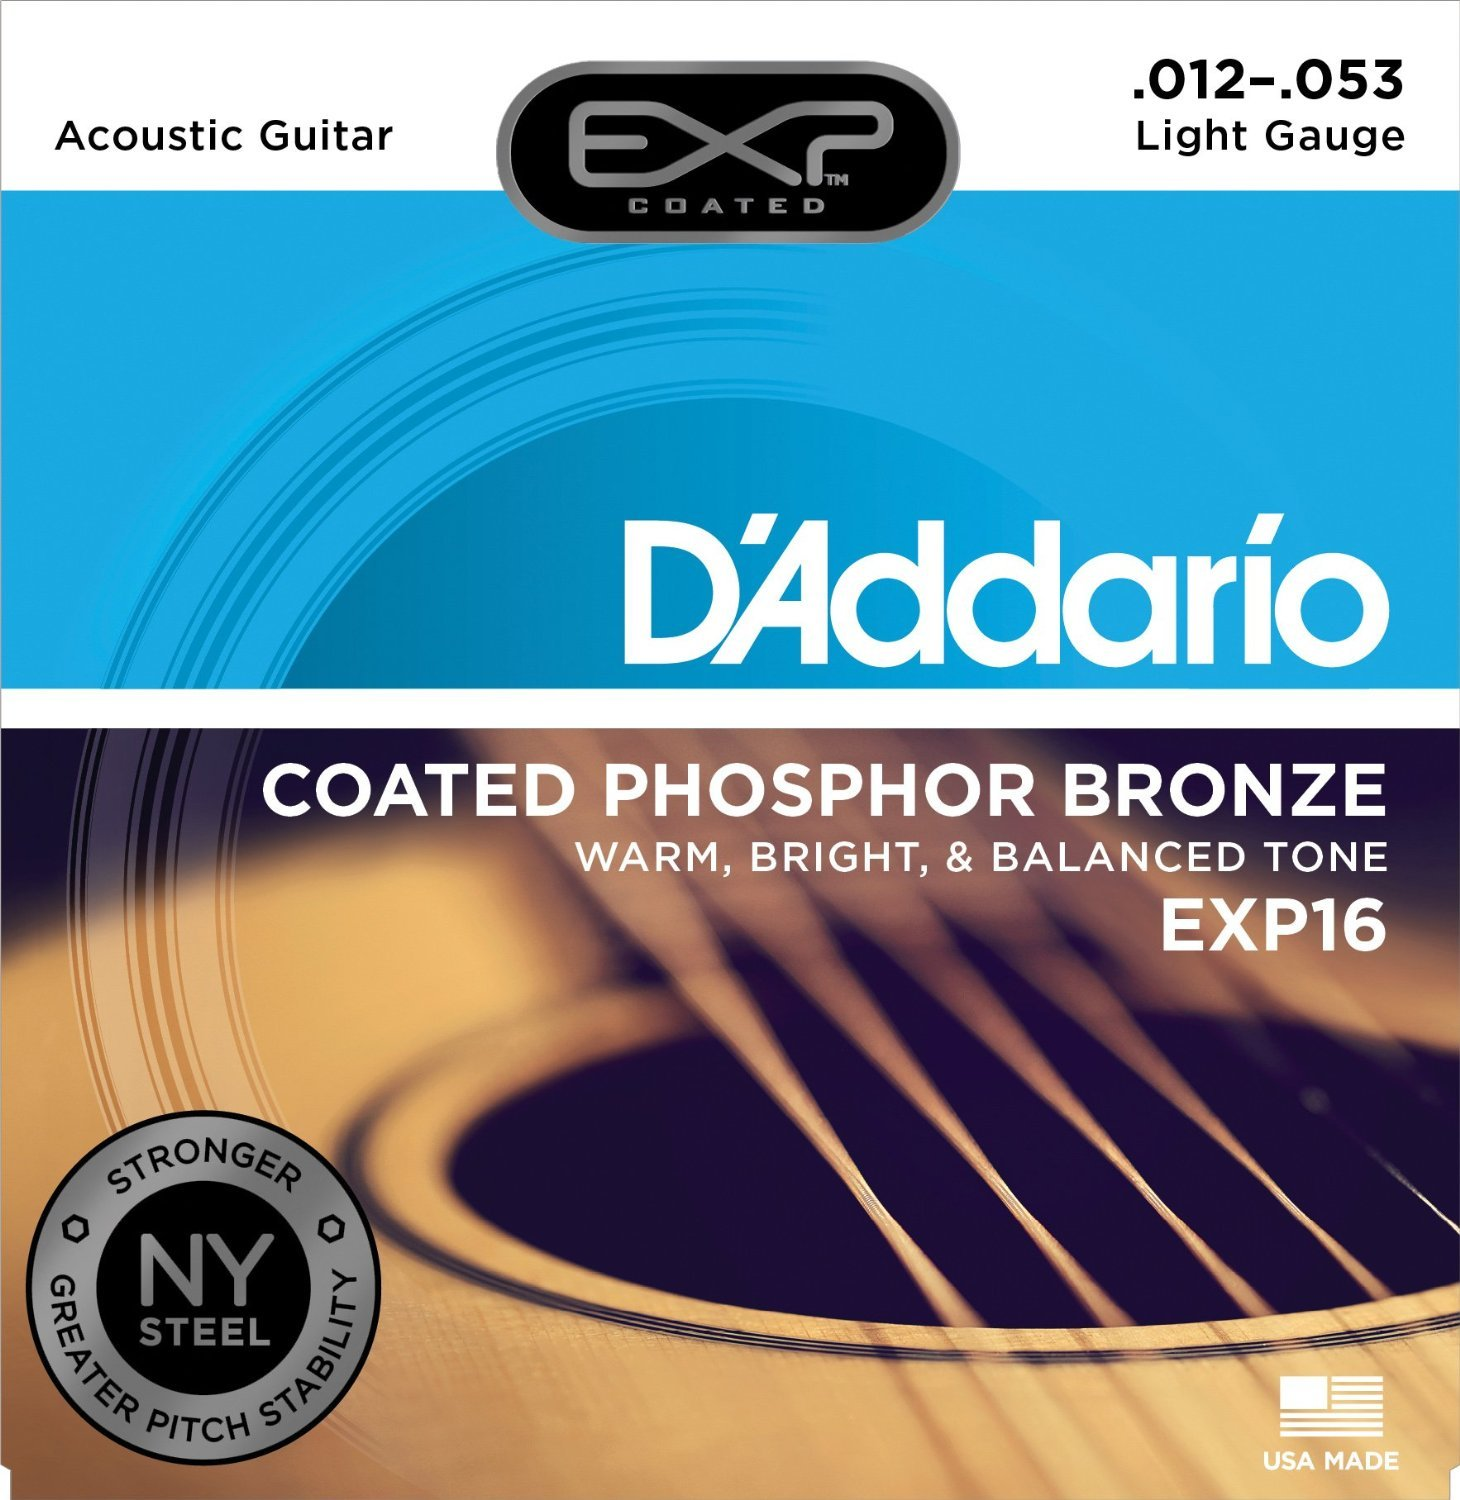 D'Addario EXP16 with NY Steel Phosphor Bronze Acoustic Guitar Strings, Coated, Light, 12-53 by D'Addario (Image #1)